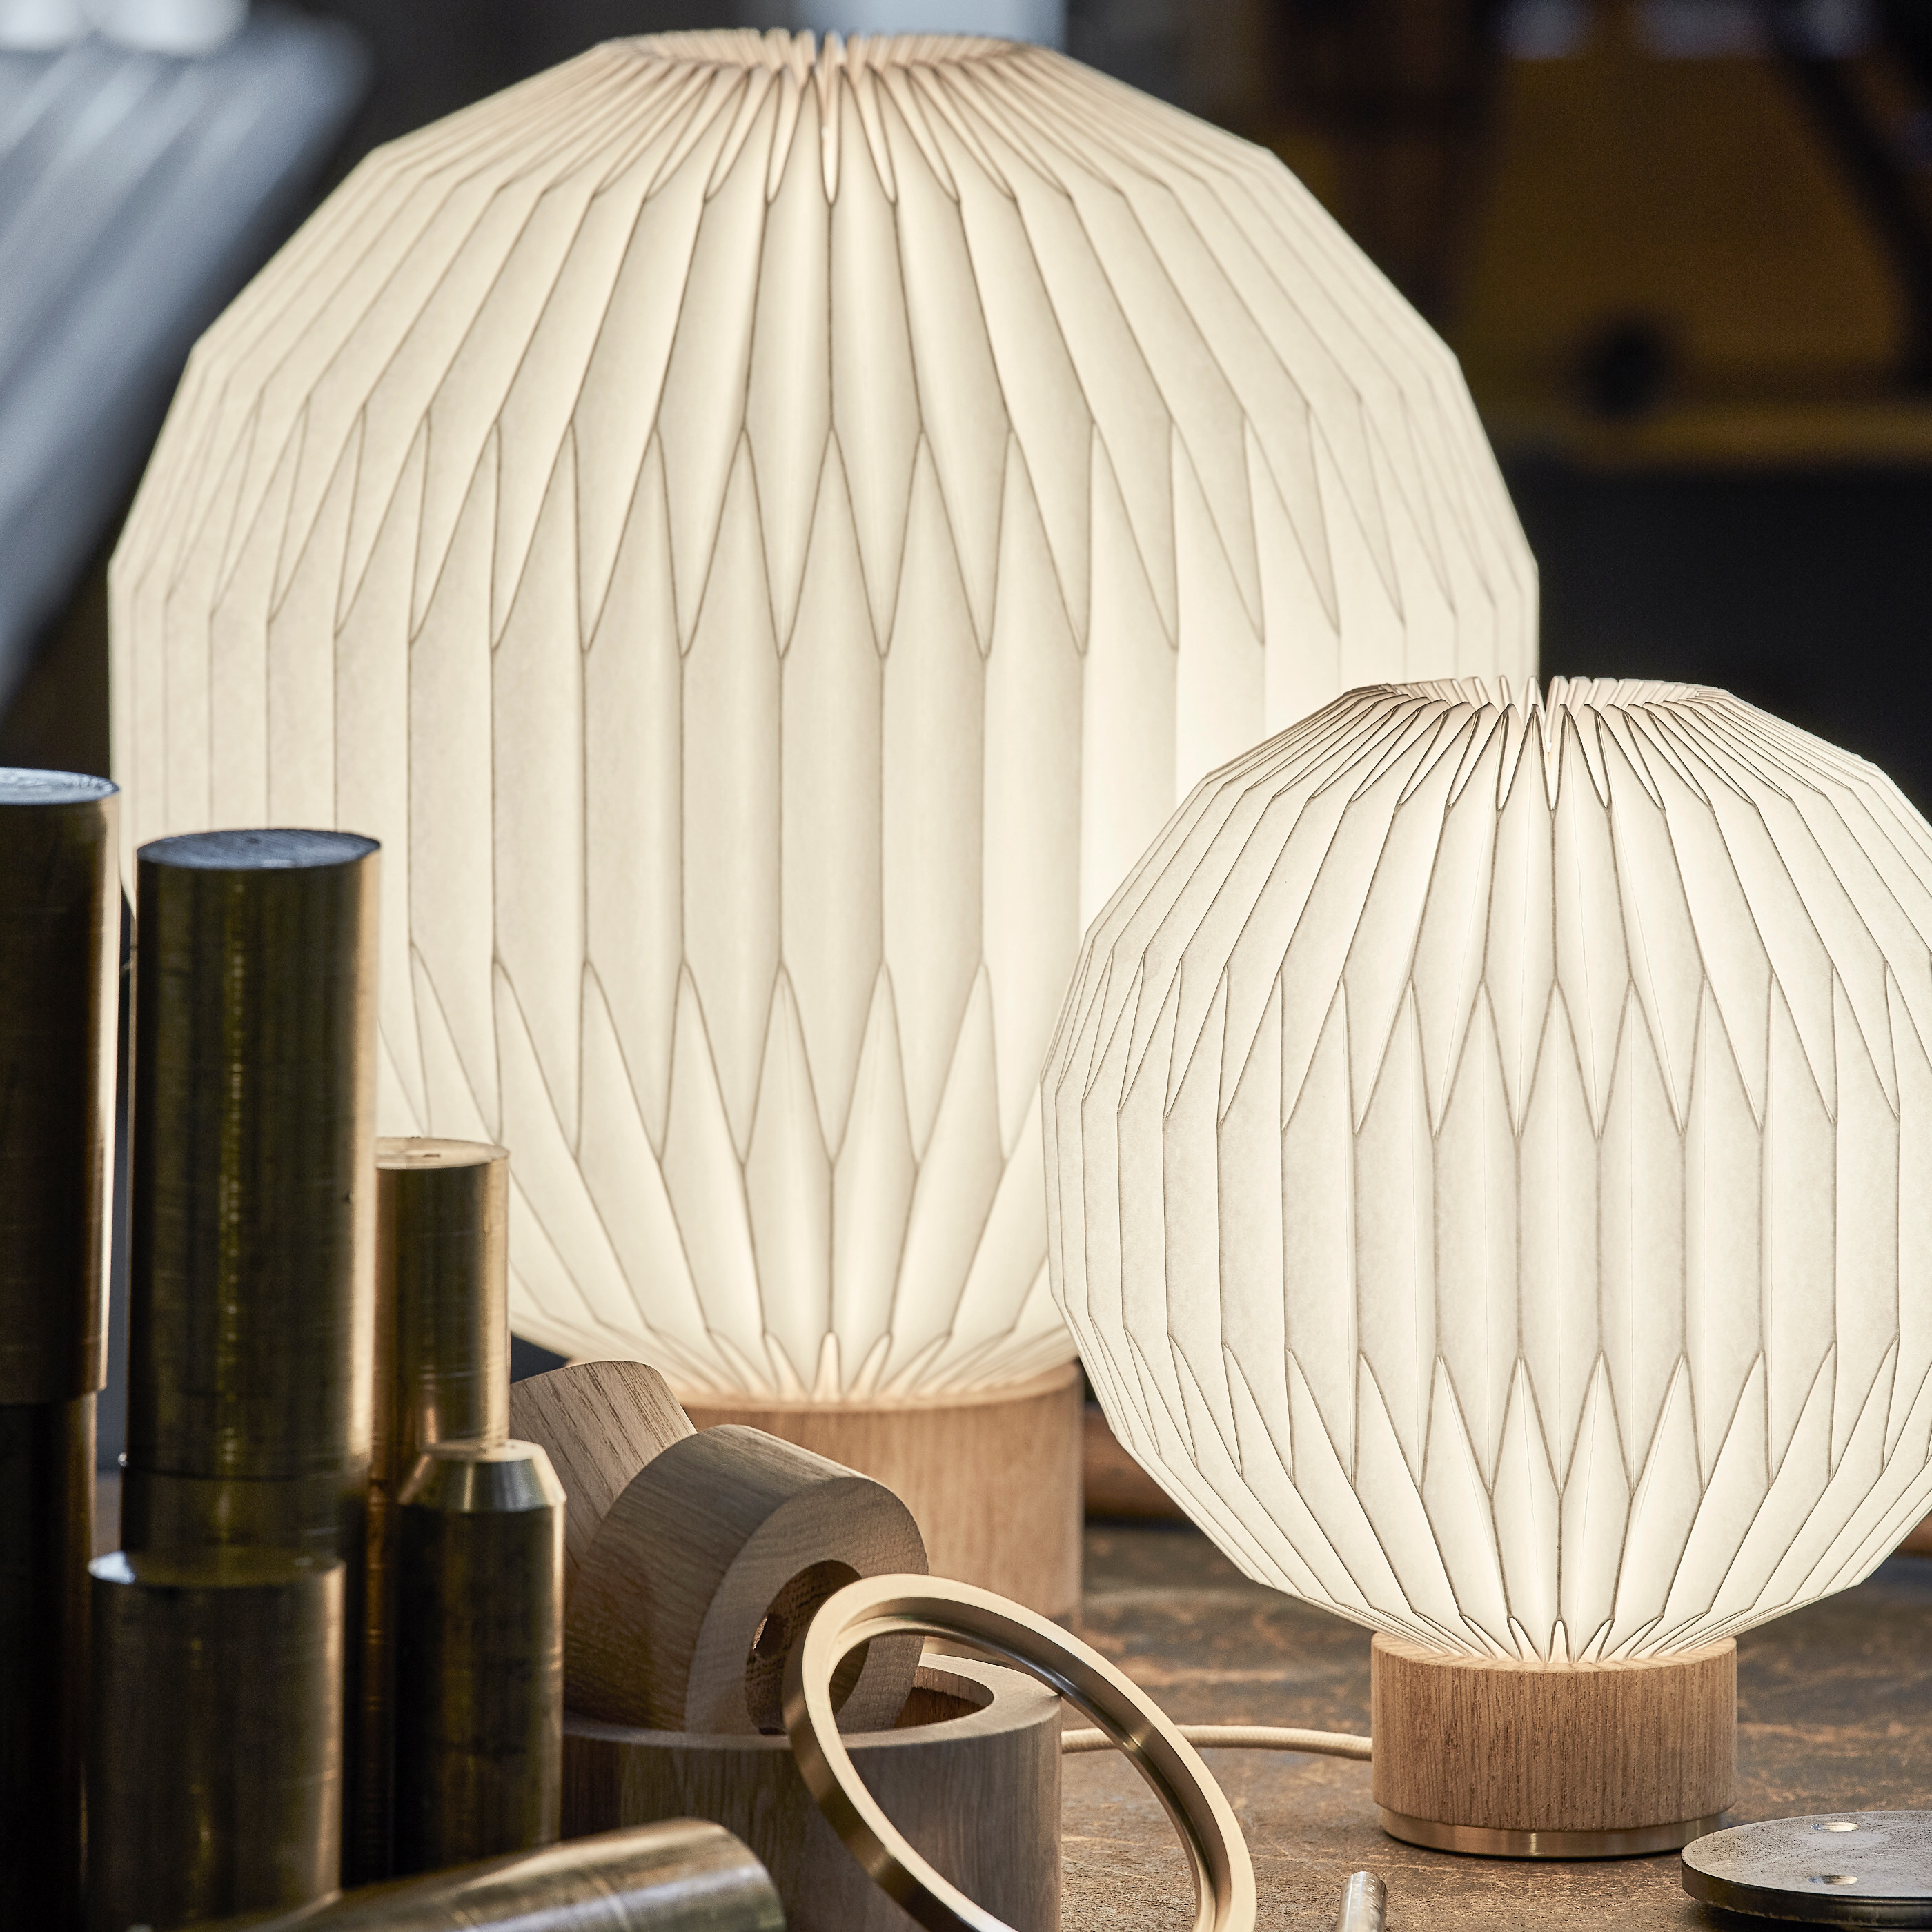 Based On The Iconic Lamp By Danish Designer Esben Klint 375m And 375s Table Lamp Design For Le Klint Interior 3000